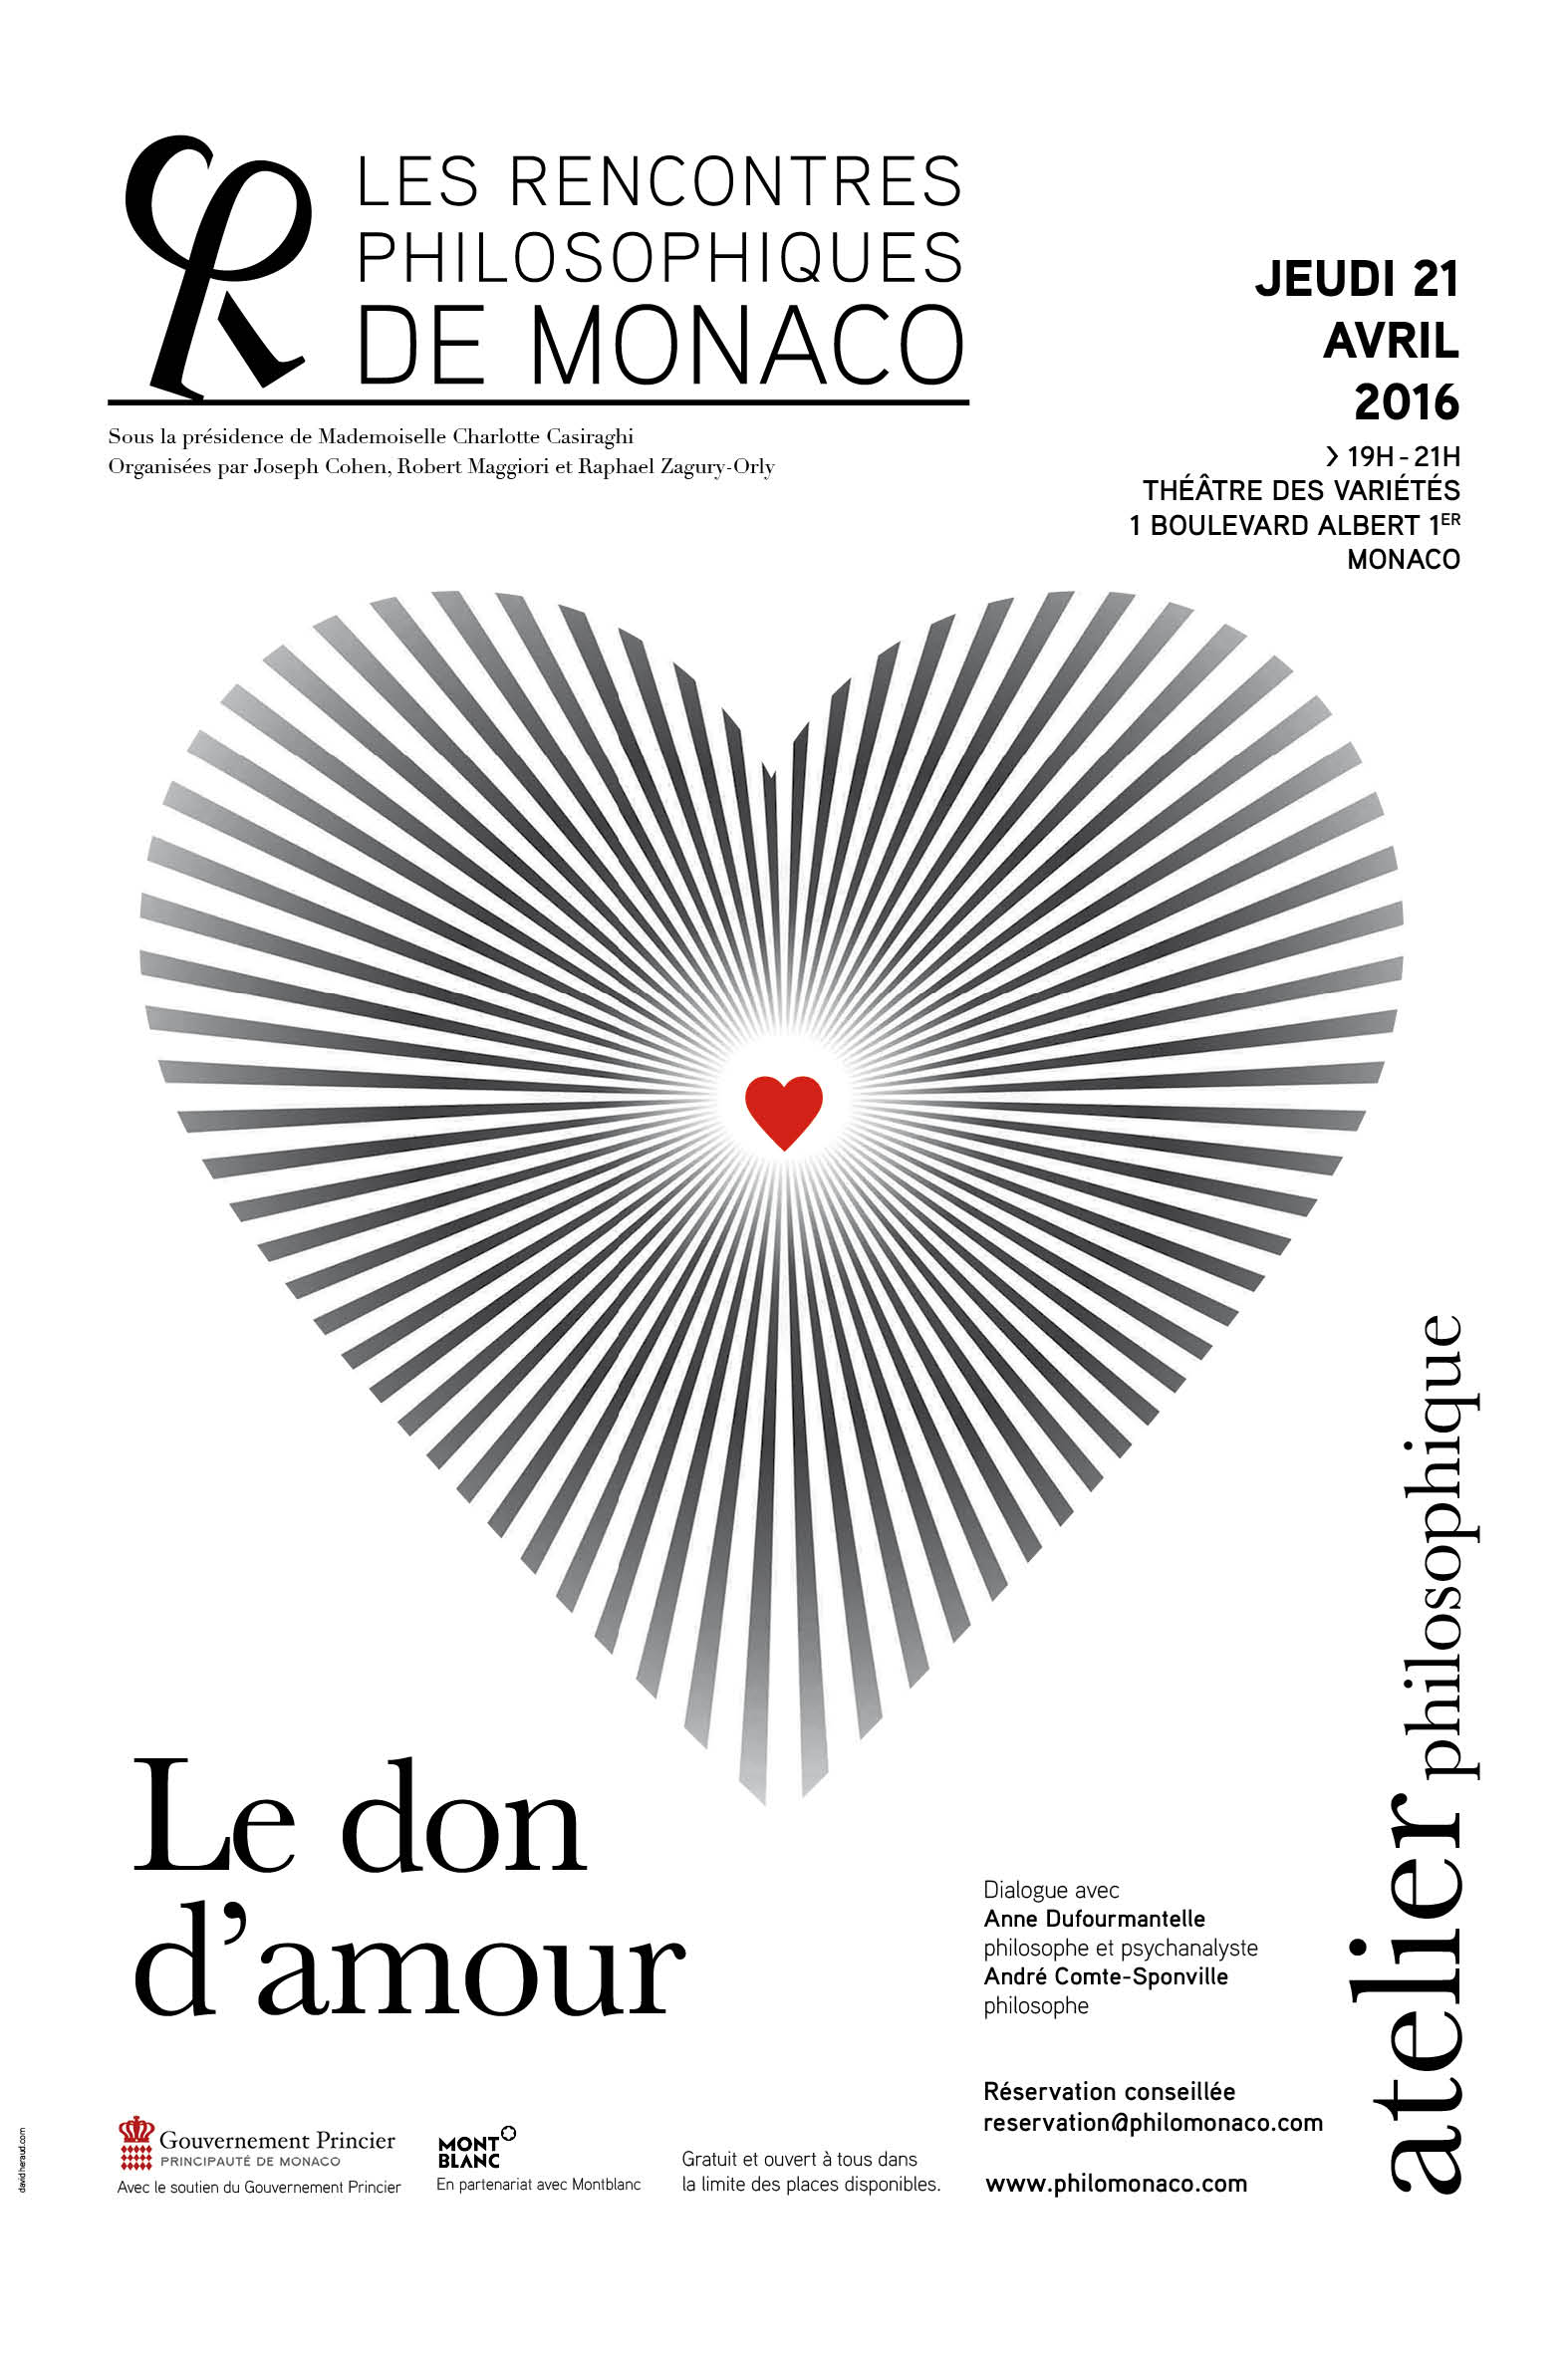 1206, 1206, Affiche DON, Affiche-DON-.jpg, http://philomonaco.com/wp-content/uploads/2017/02/Affiche-DON-.jpg, , 2, , , affiche-don, 2017-02-20 17:02:14, 2017-02-20 17:02:17, image/jpeg, image, http://philomonaco.com/wp-includes/images/media/default.png, 1574, 2362, Array